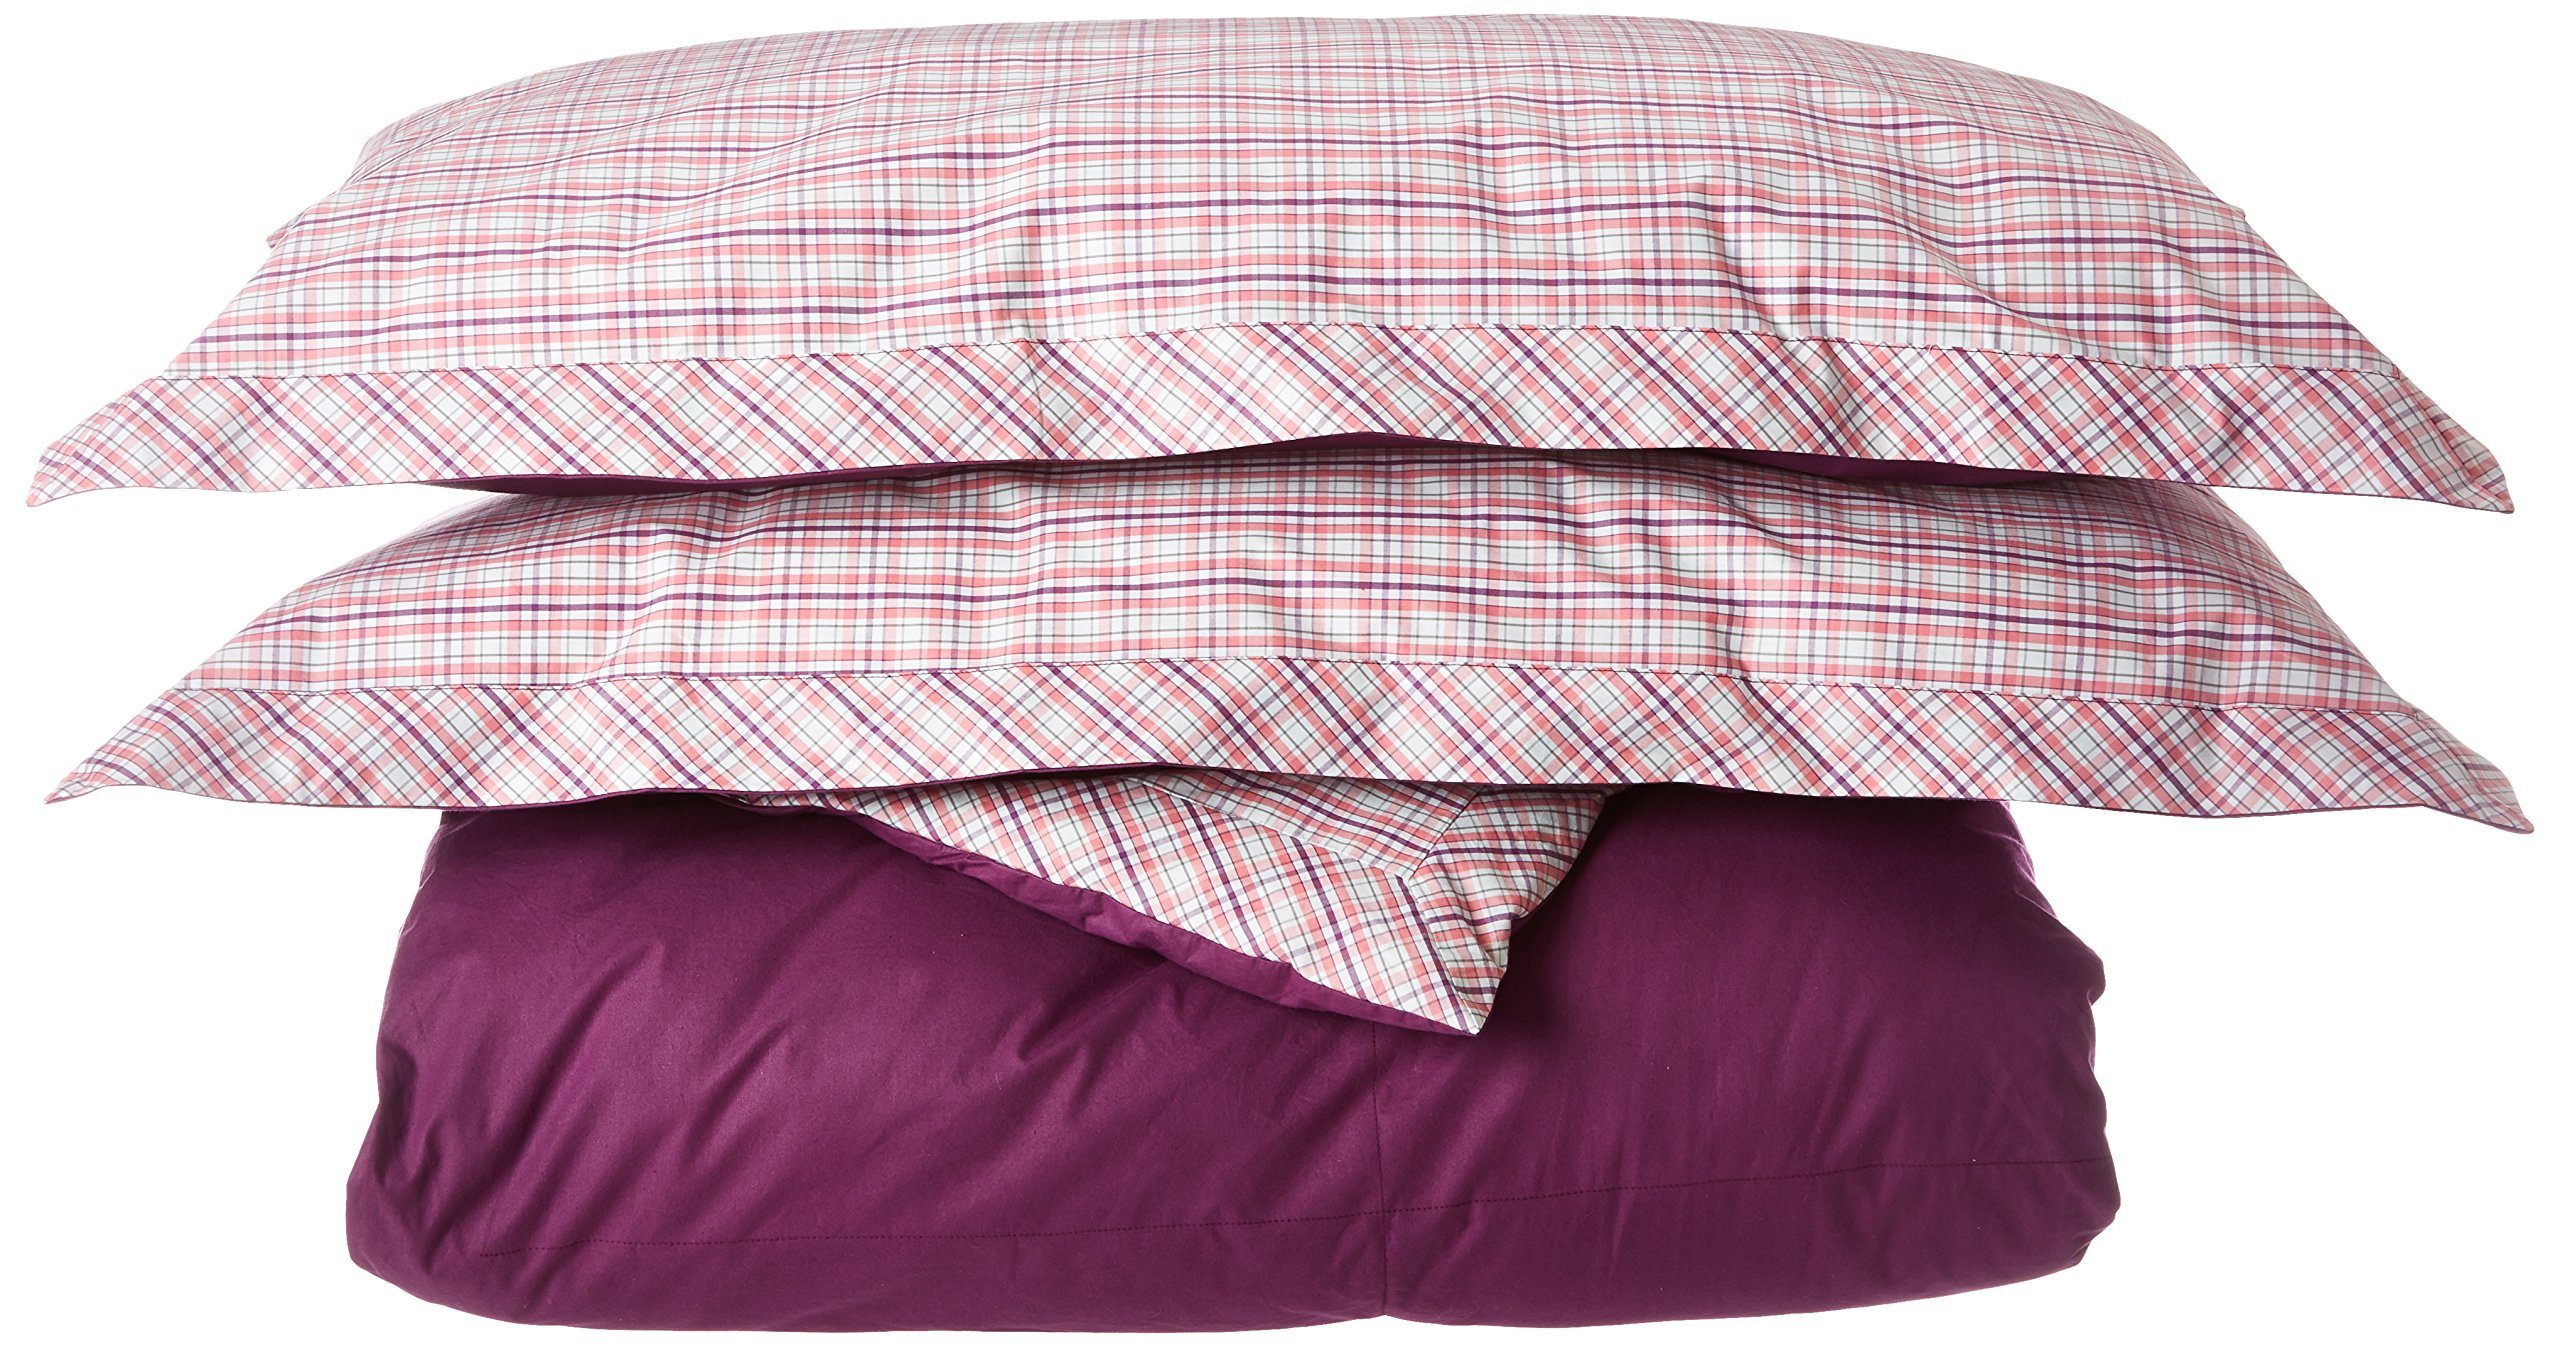 Southern Tide Strawberry Master Plaid/Wood Violet Yarn-Dye Mini Comforter Set, Full/Queen by Southern Tide (Image #1)